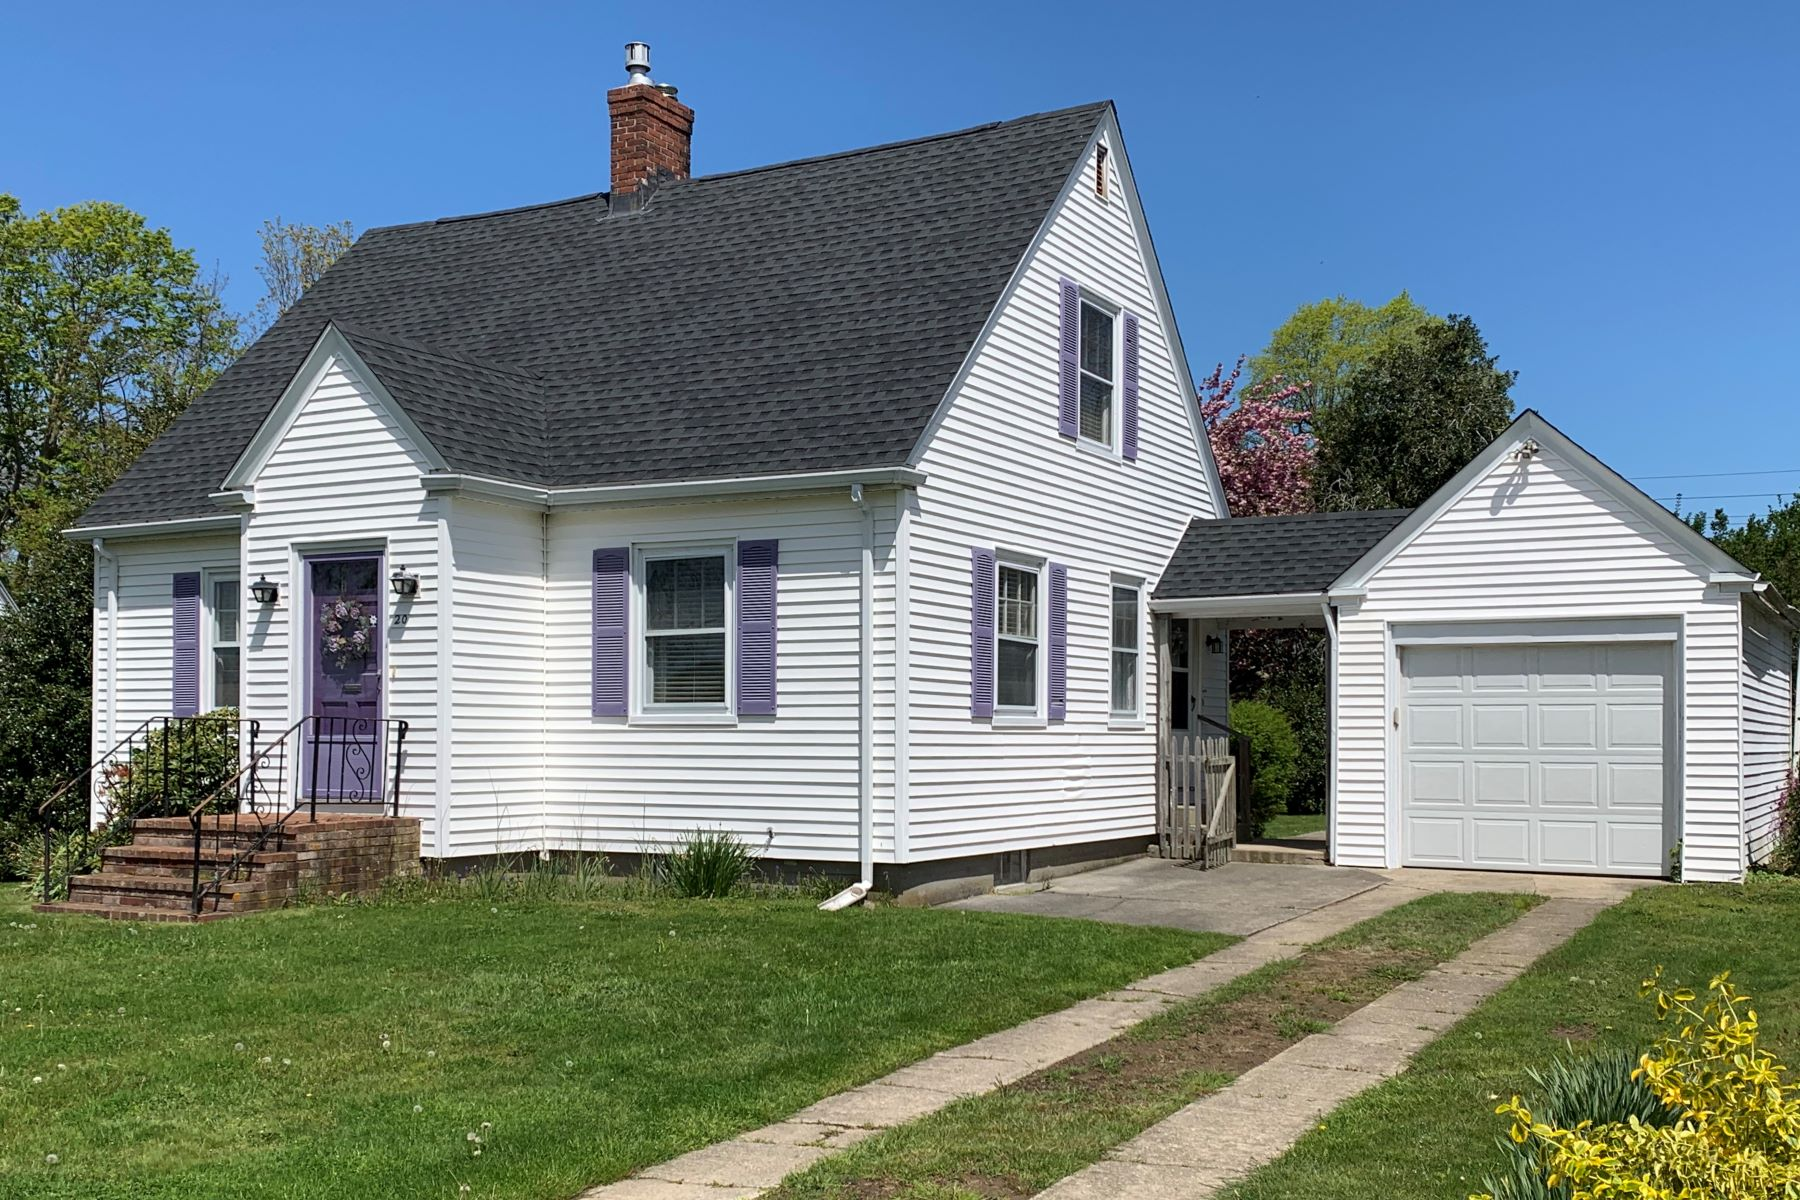 Single Family Homes for Sale at Adorable Cape 20 Dudley North Avenue Middletown, Rhode Island 02842 United States